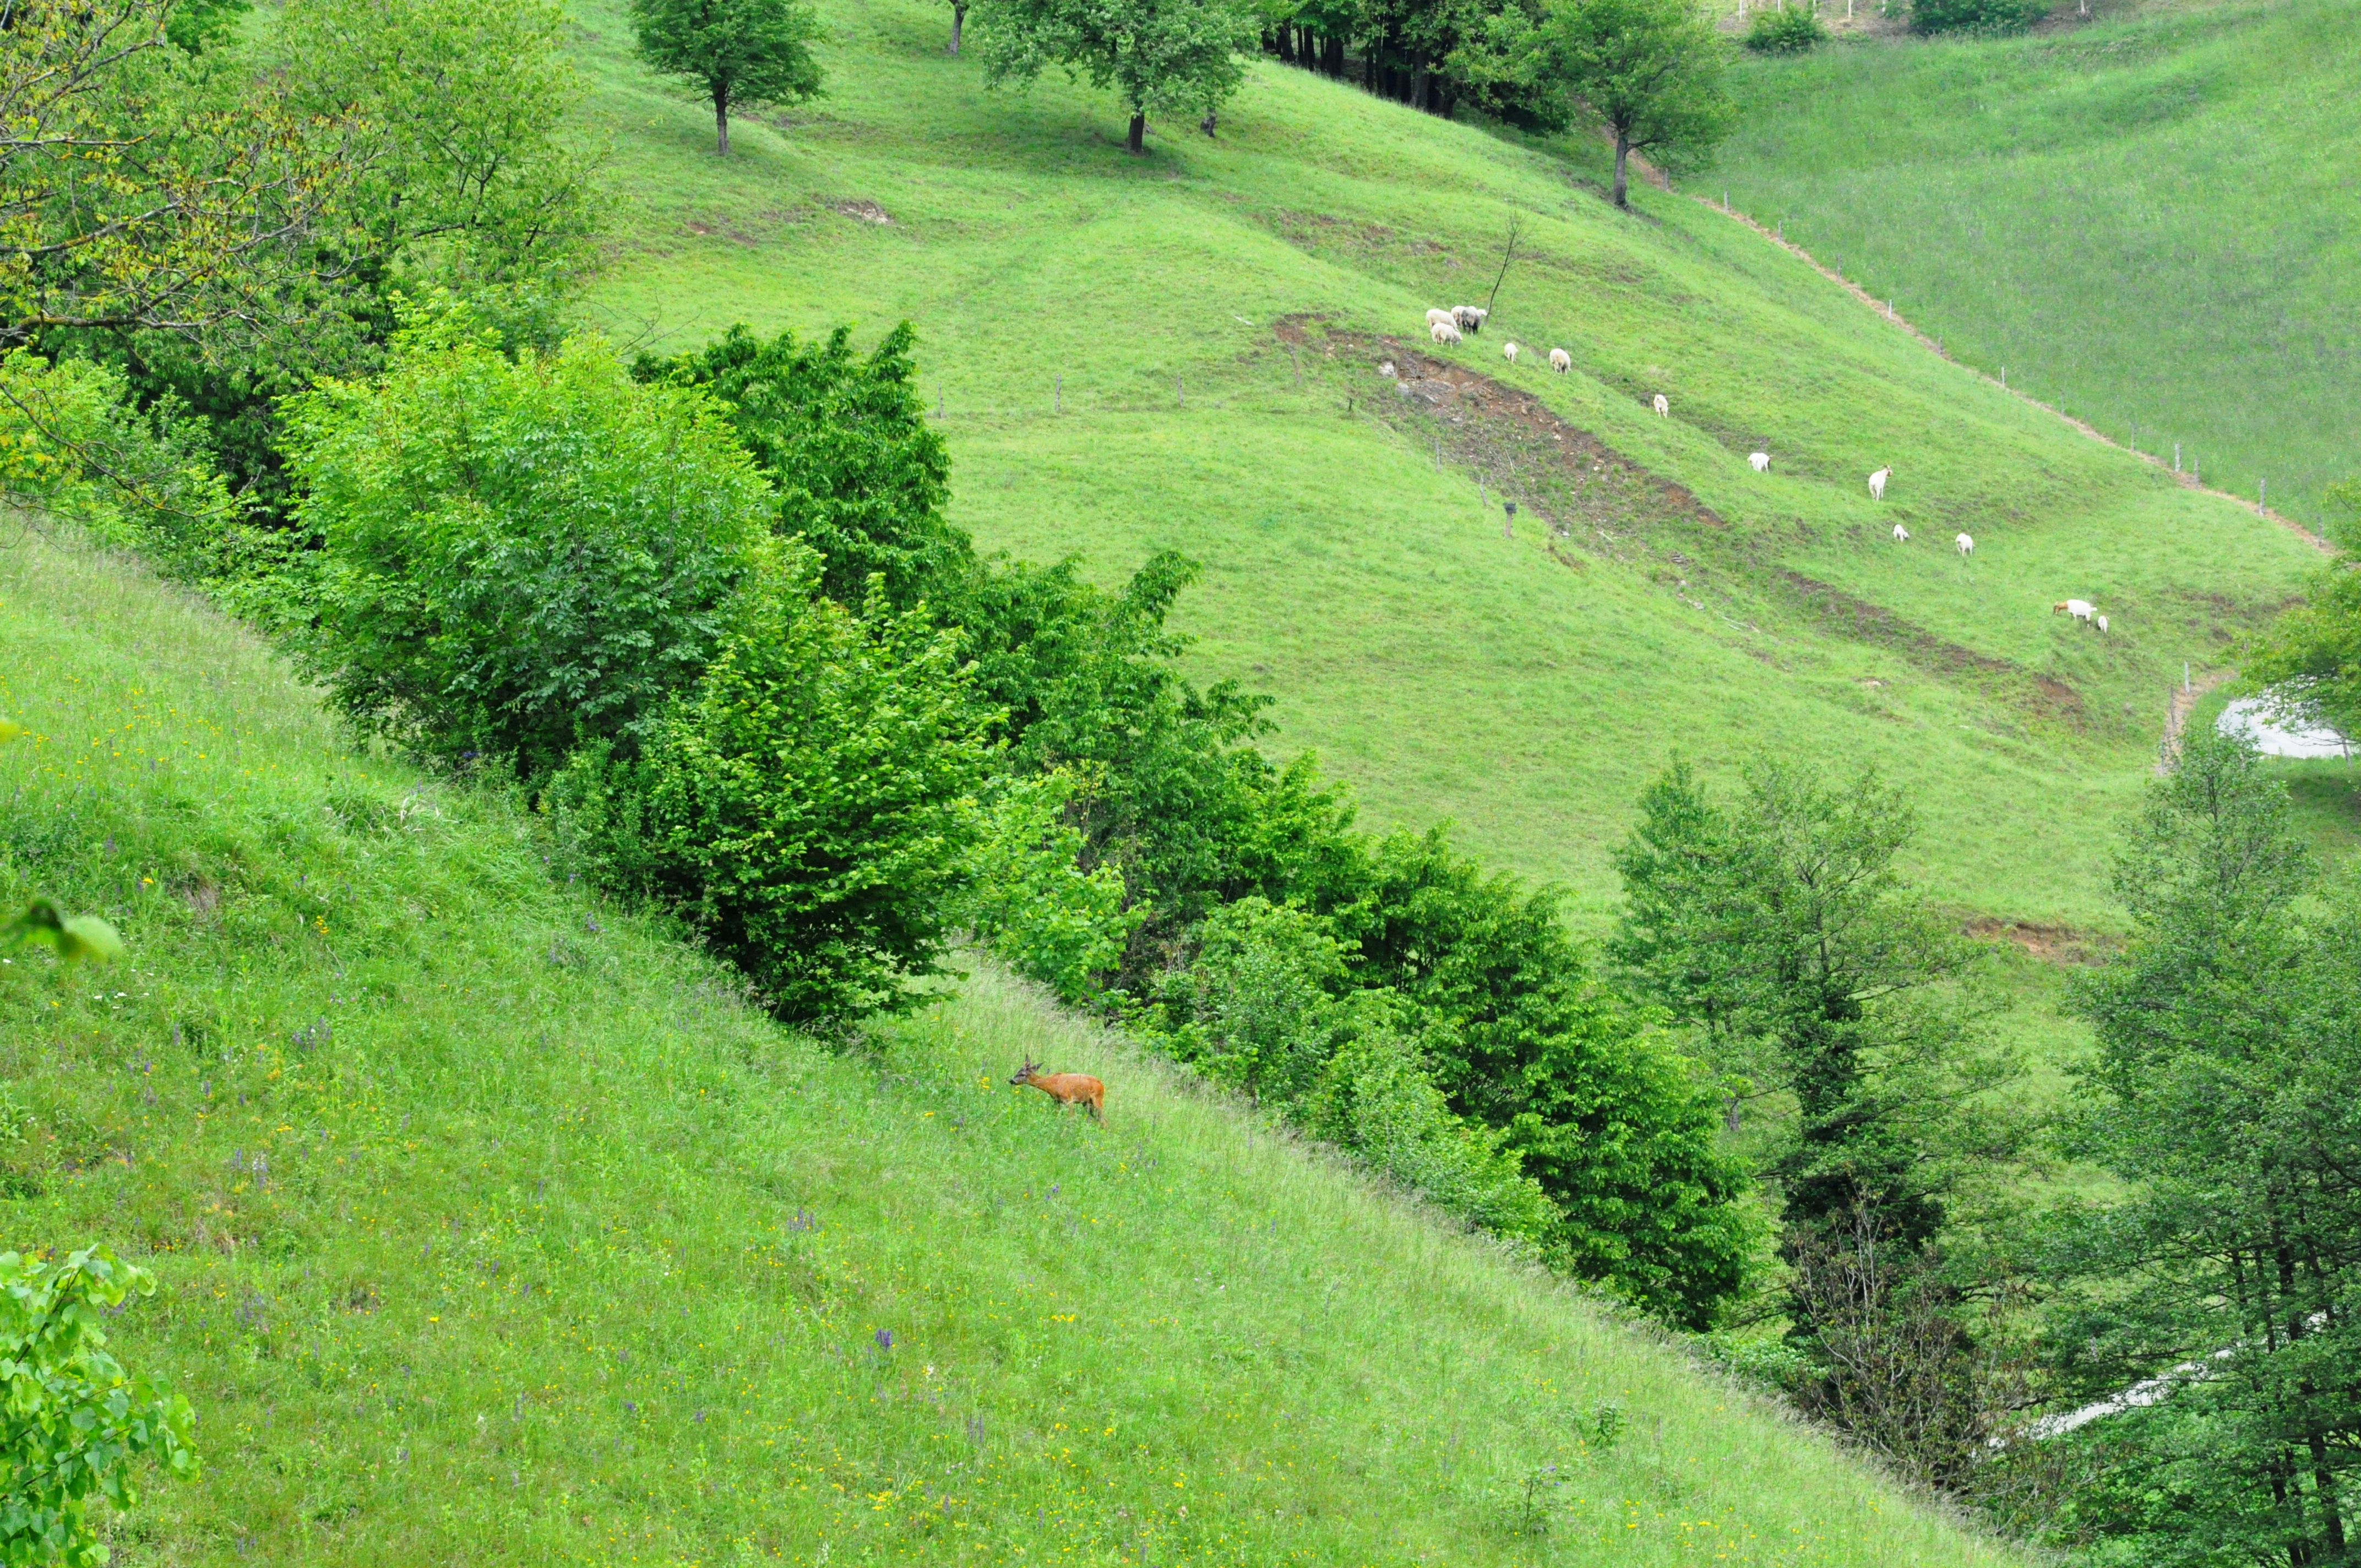 Sheep grazing on steep slopes in Haloze